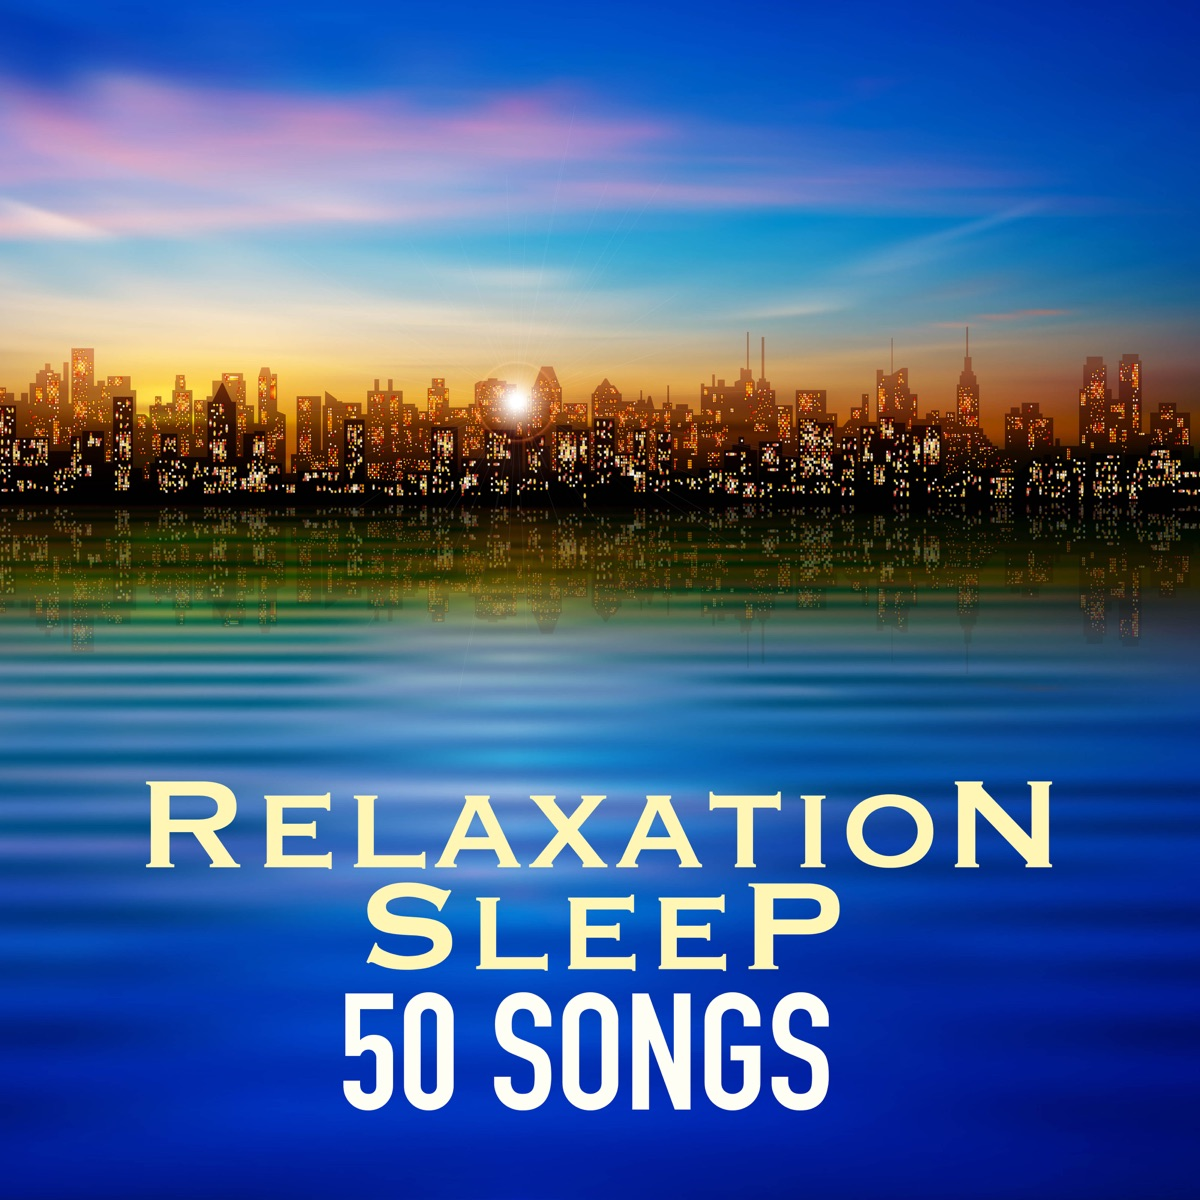 Sleep Music For Kids Relaxation Sleep 50 Songs Instrumental Deep Sleeping Ambient To